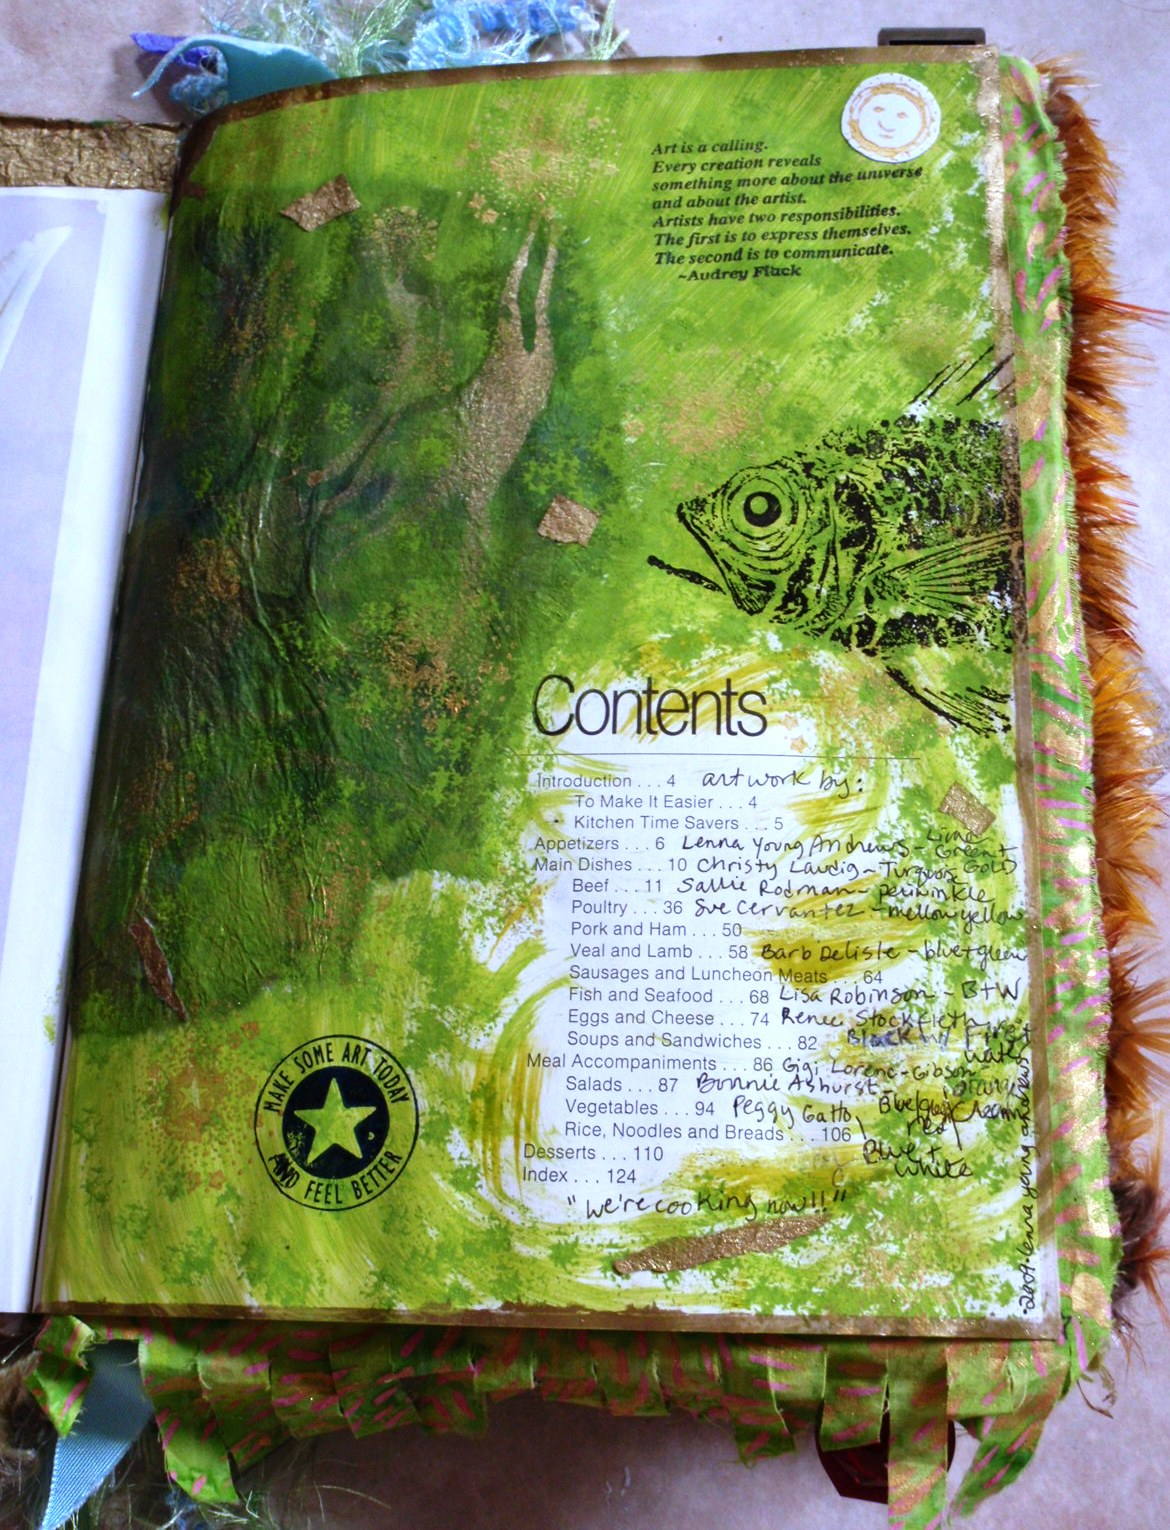 2009: Altered Cookbook for exchange